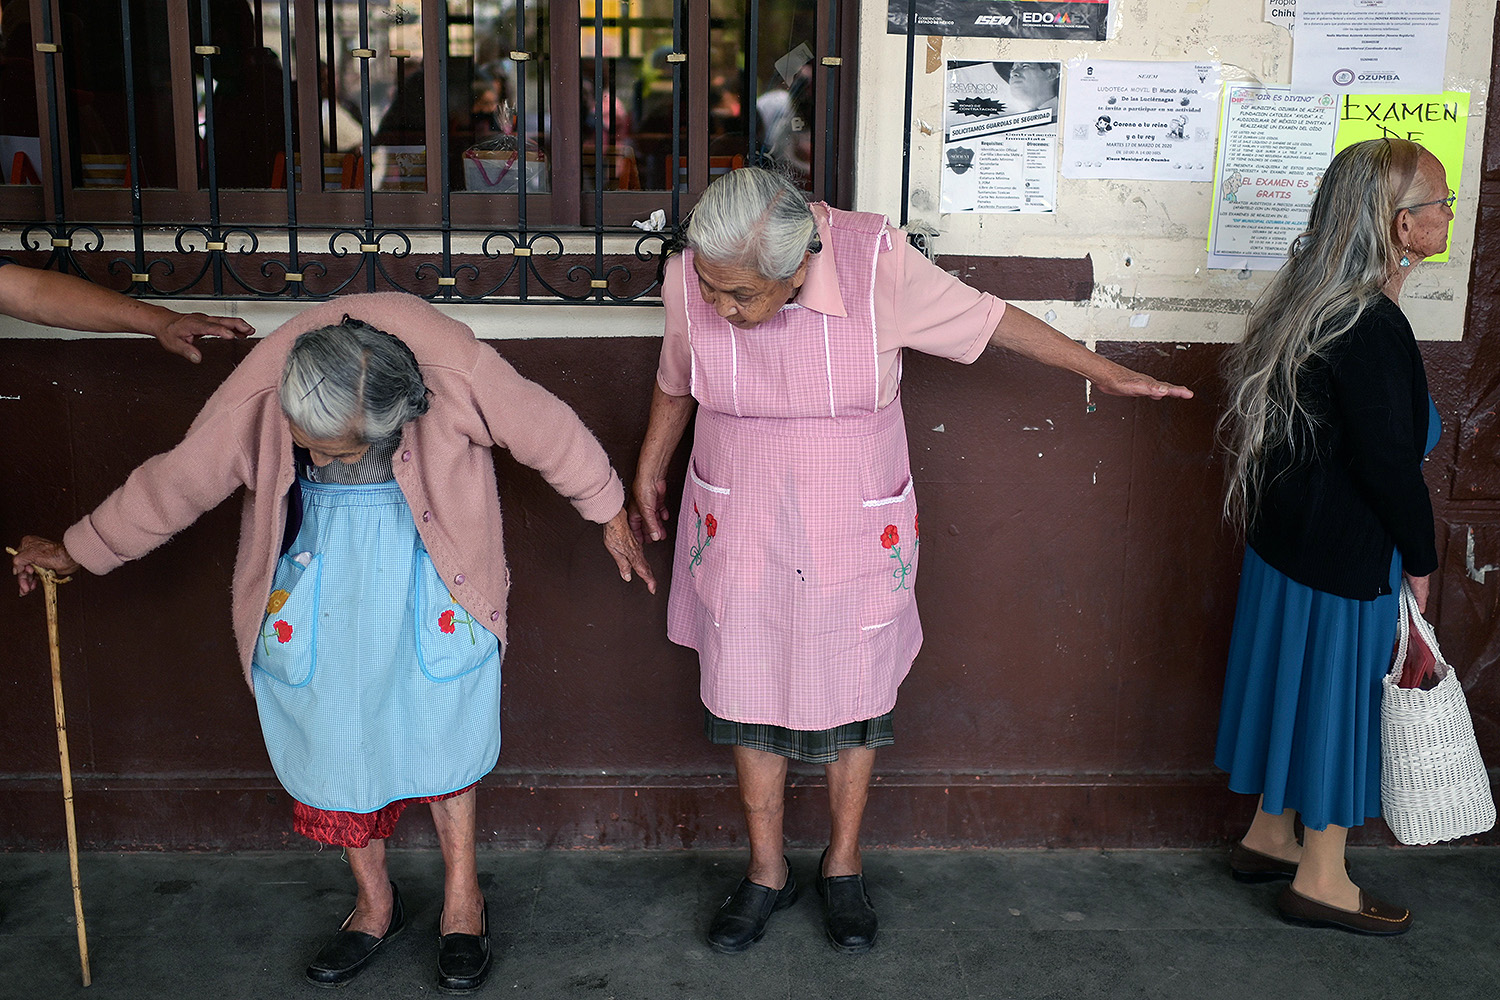 Elderly women try to keep up social distancing as they wait to enroll in government social-aid programs in Ozumba, Mexico, on April 3. PEDRO PARDO/AFP via Getty Images